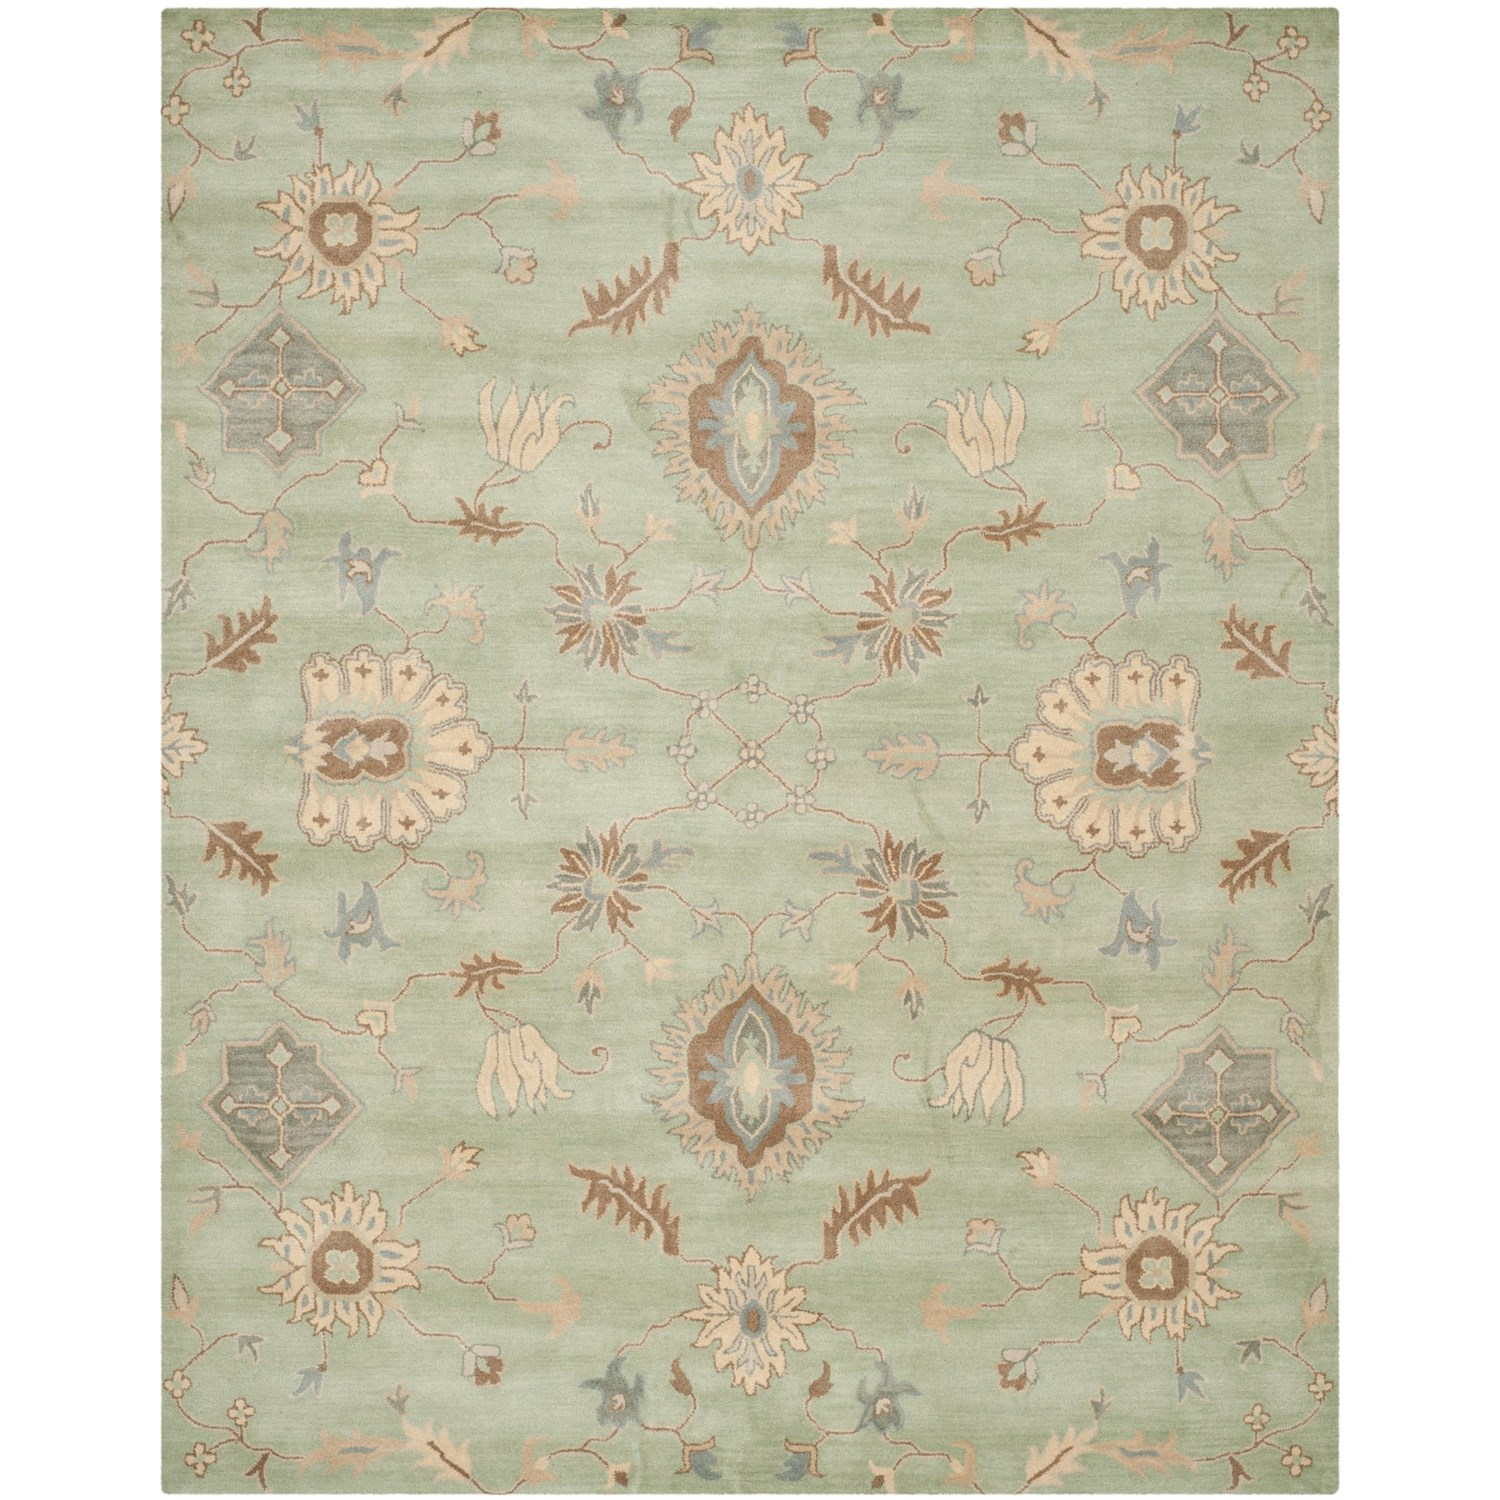 Stella Collection Hand Tufted Area Rug In Beige Light: Safavieh Wyndham Collection Light Green Square Area Rug